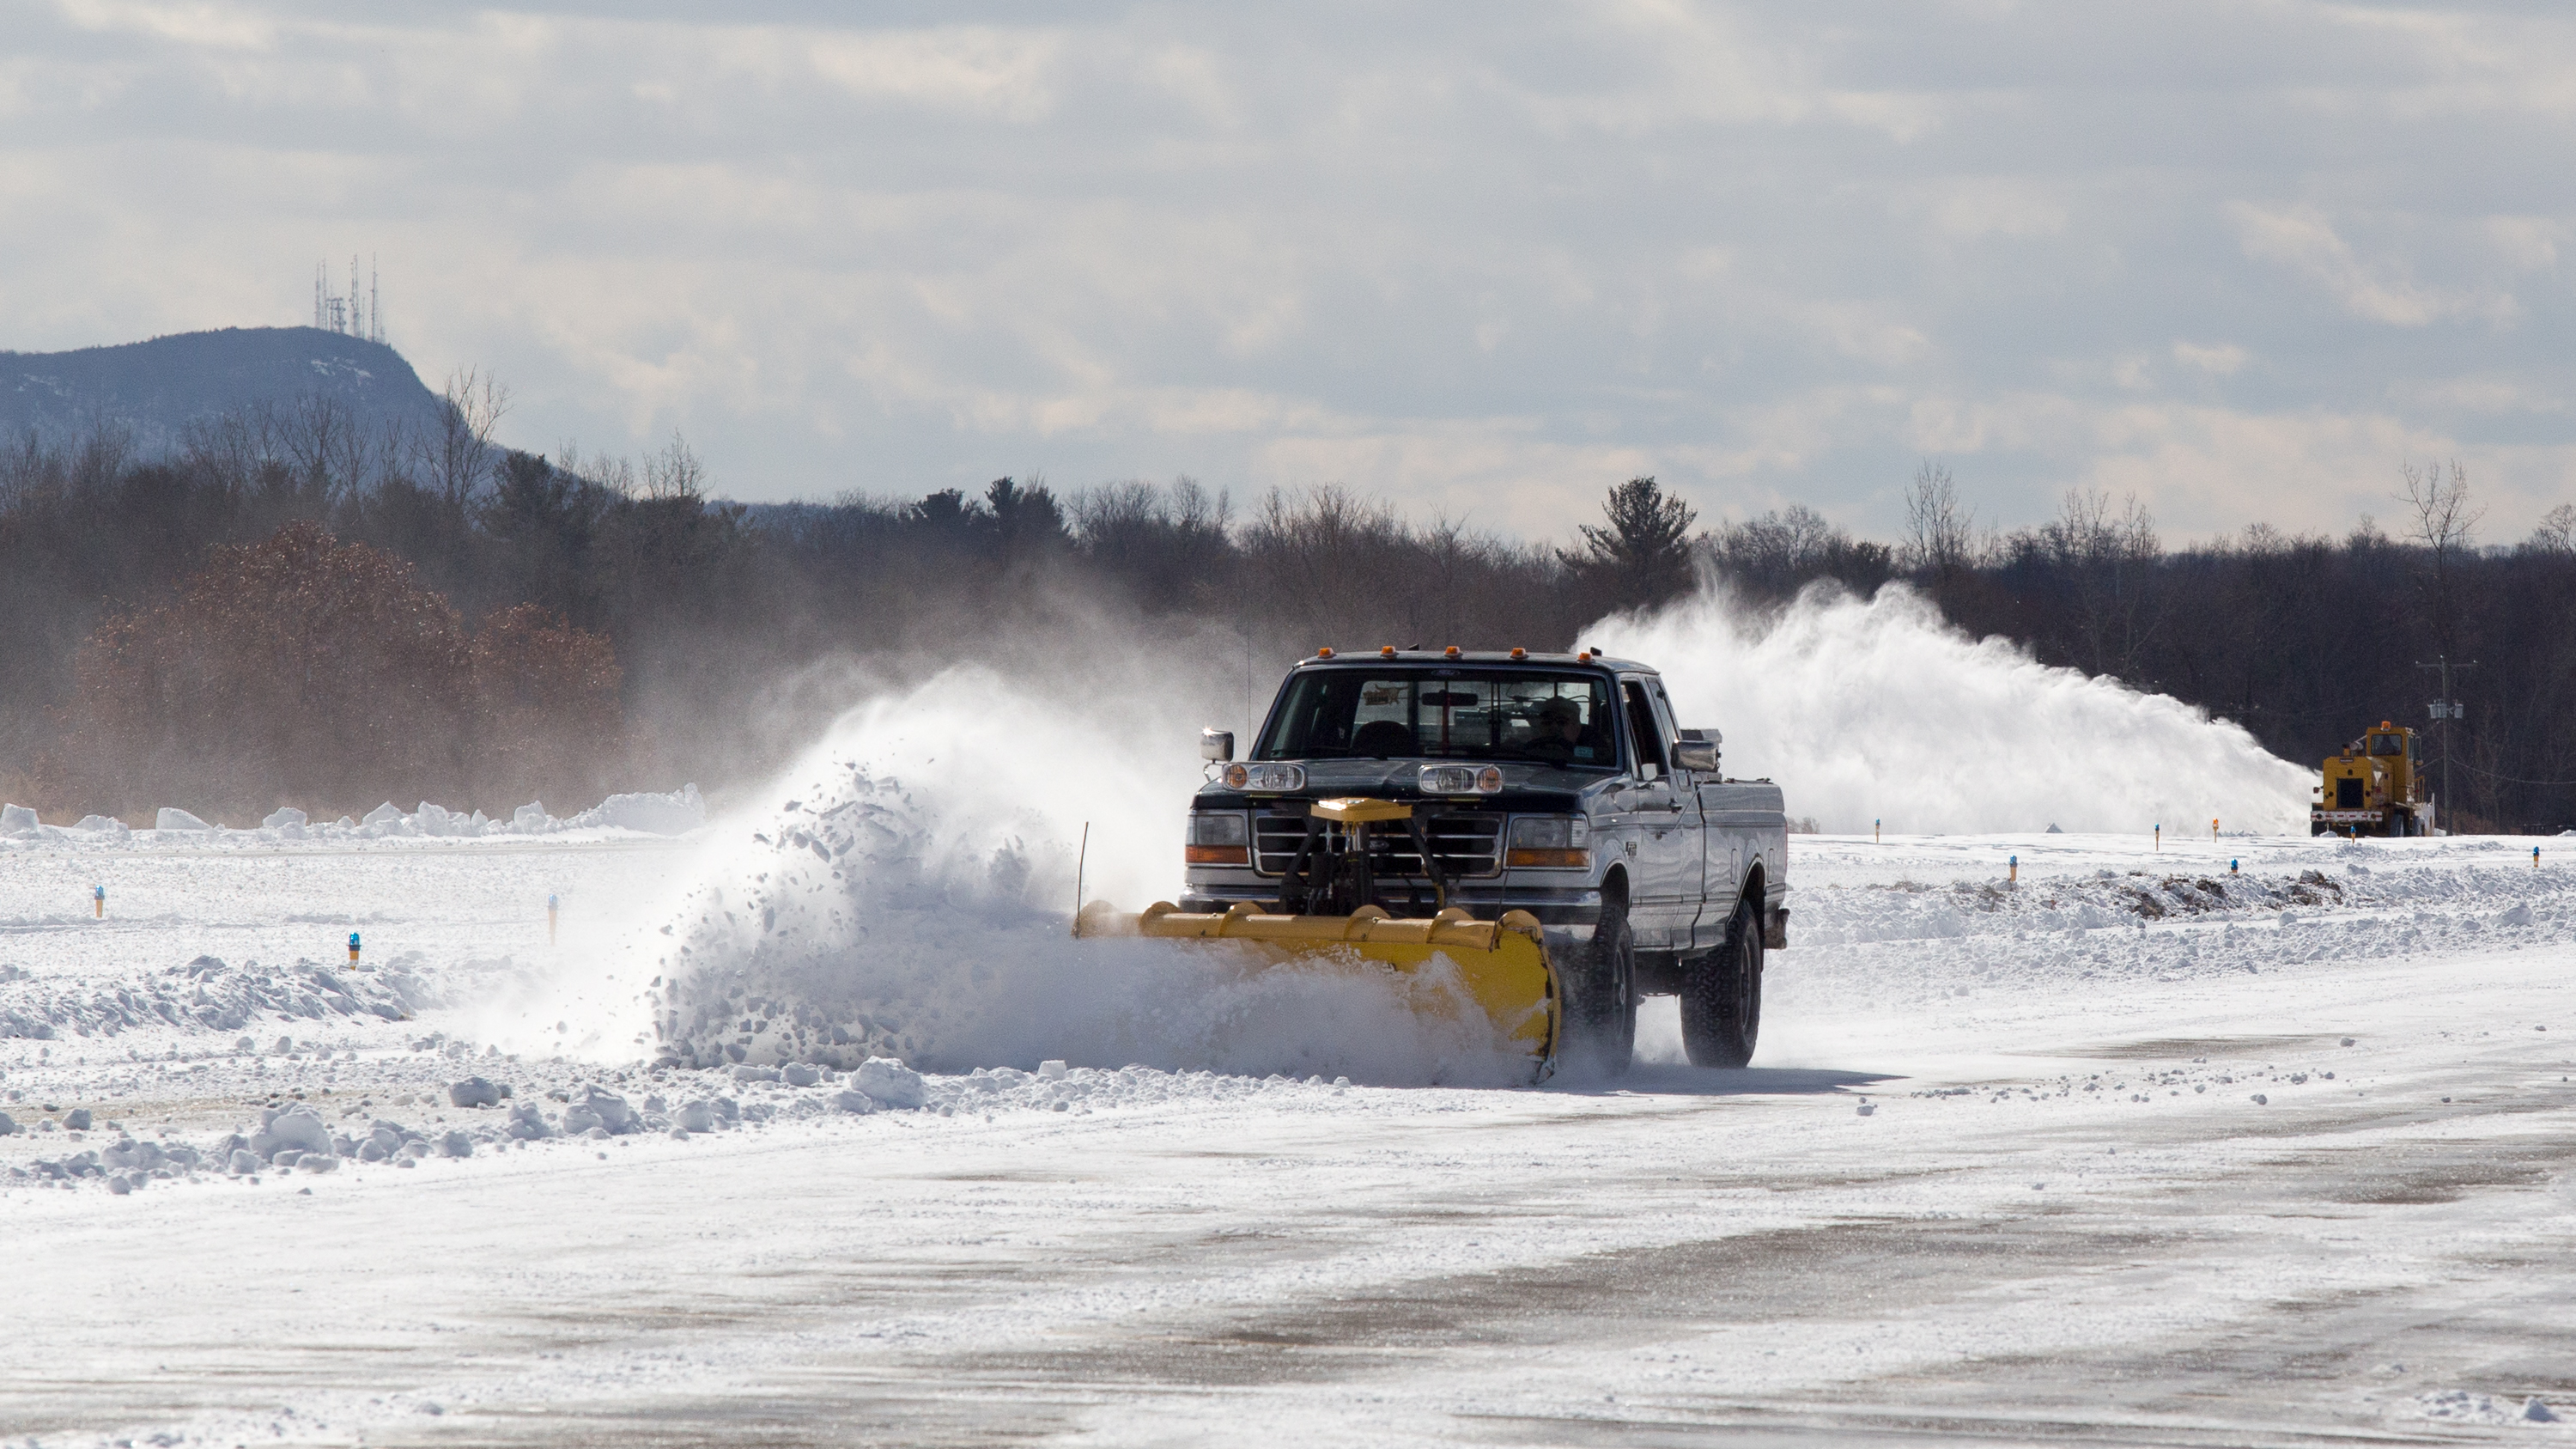 Airport manager Bill O'Leary plows with a pickup while one of his employees clears the runway with an SMI Snowmaster on Feb. 10. Jim Moore photo.